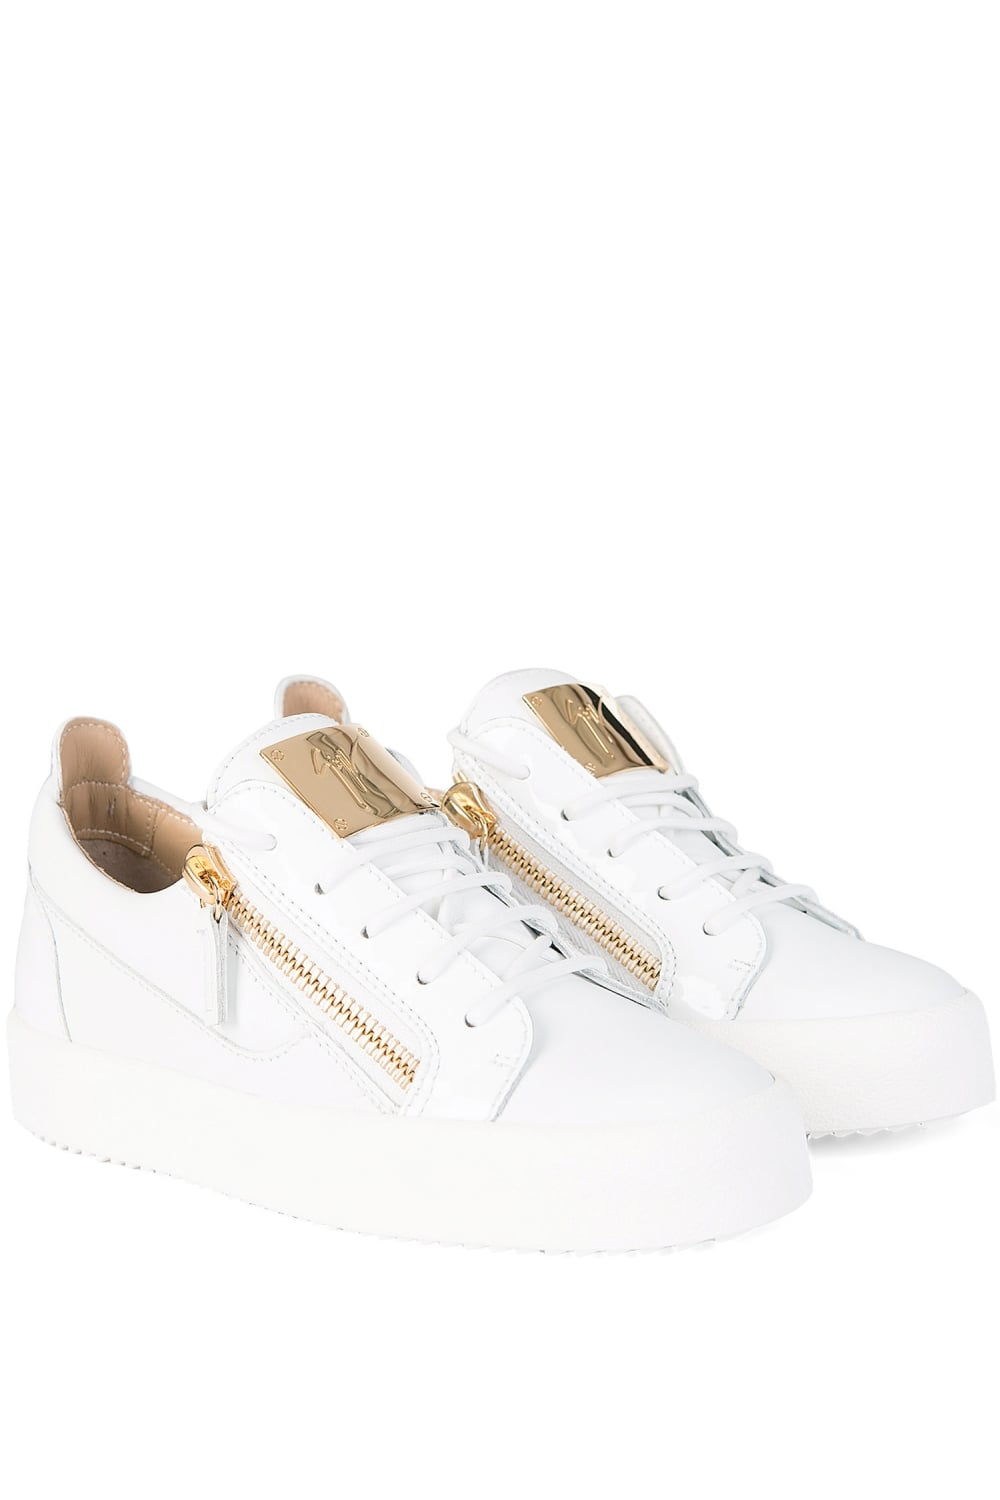 b837ddf6c17af Giuseppe Zanotti Women's May London Sneakers White